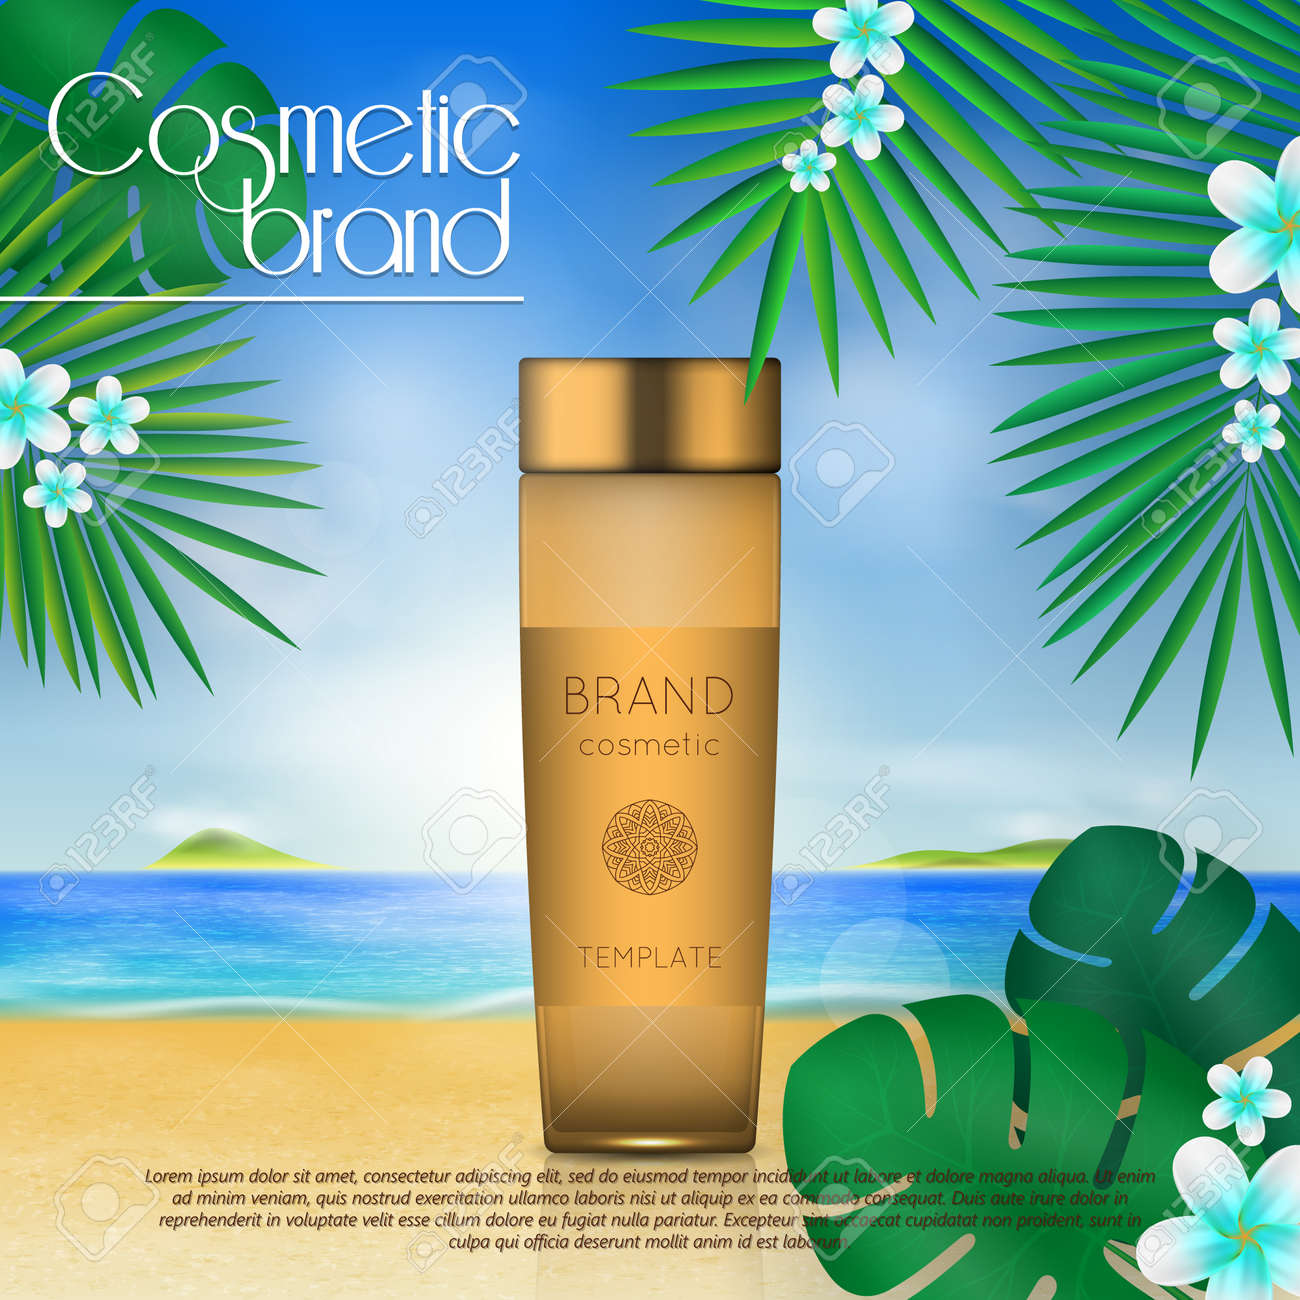 Summer sunblock cosmetic design template on beach background with exotic palm leaves. 3D realistic sun protection and sunscreen product ads - 104701302